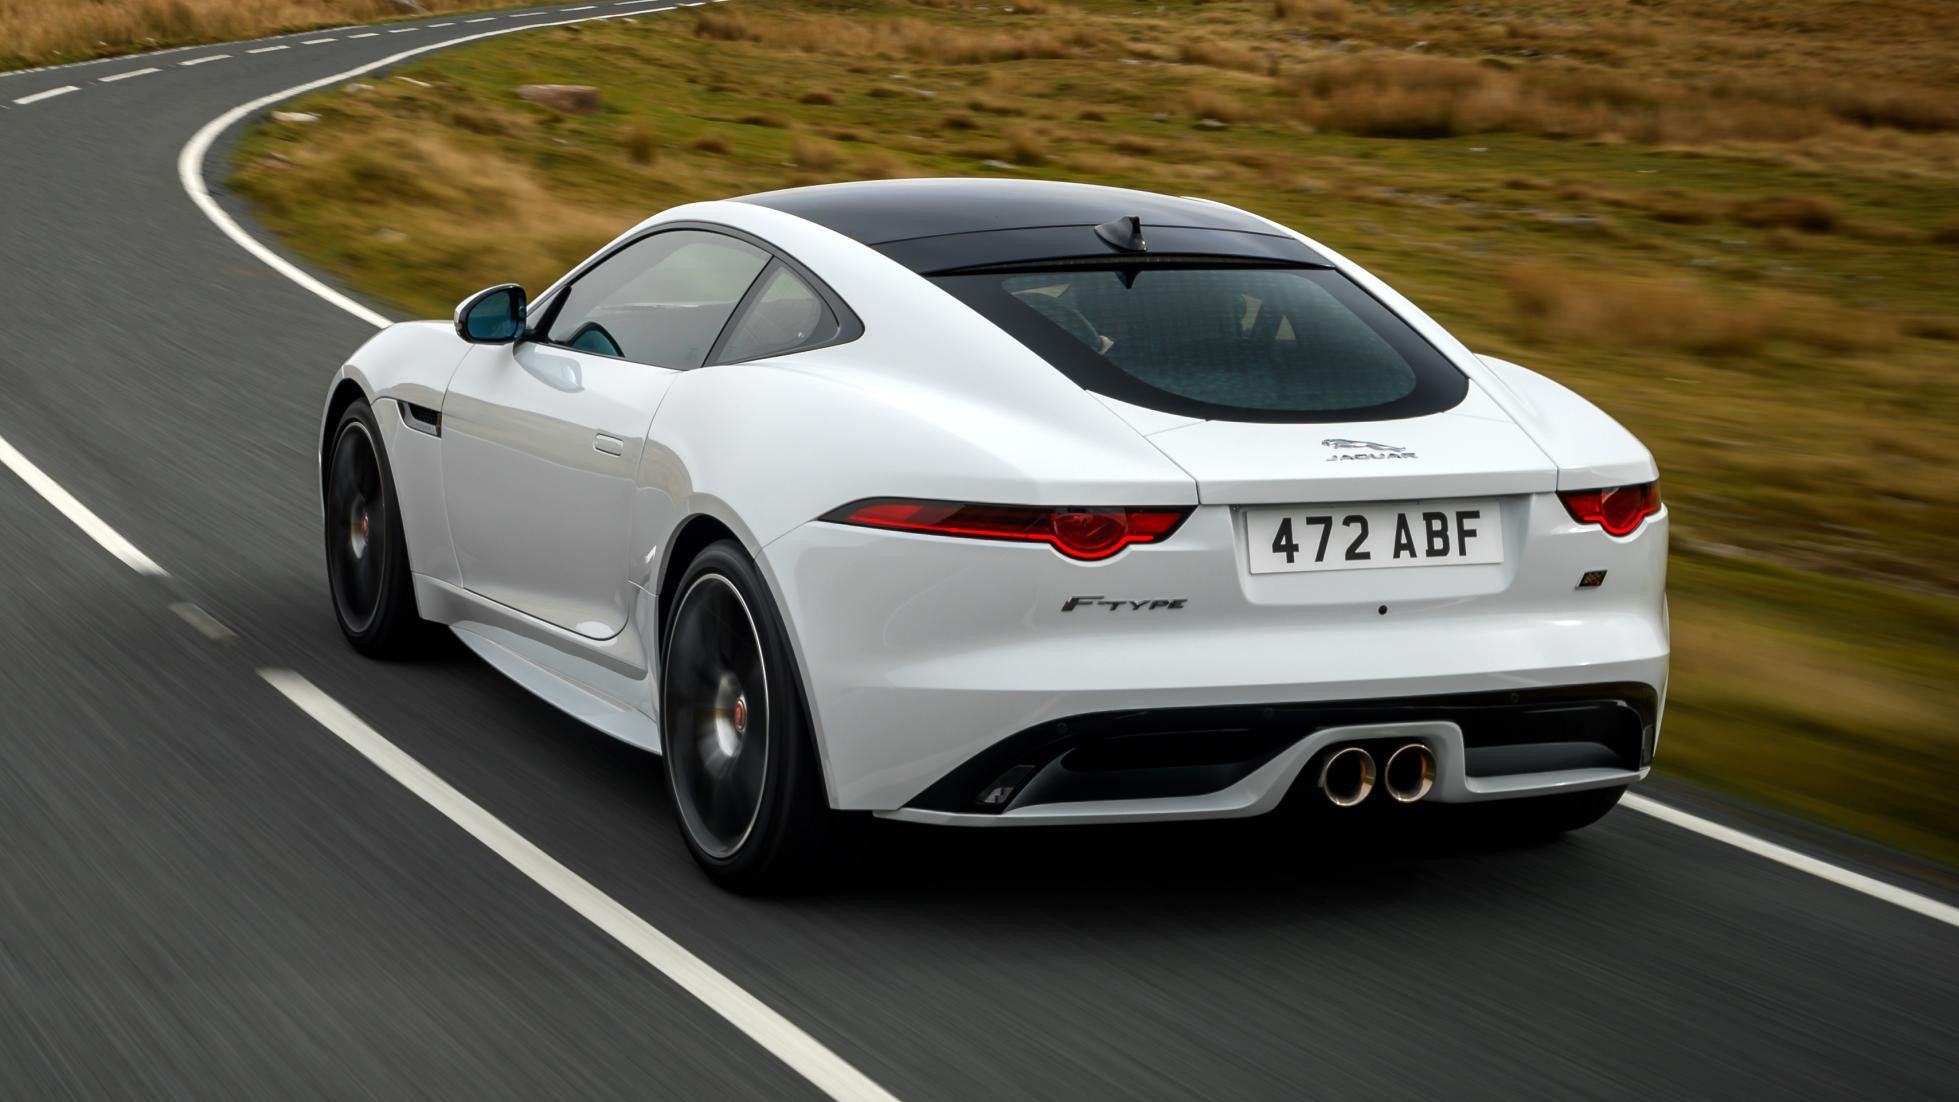 Jaguar F Type 2020 Price Price And Release Date For Jaguar F Type 2020 Price Concept Redesig In 2020 Jaguar F Type Jaguar Jaguar Type